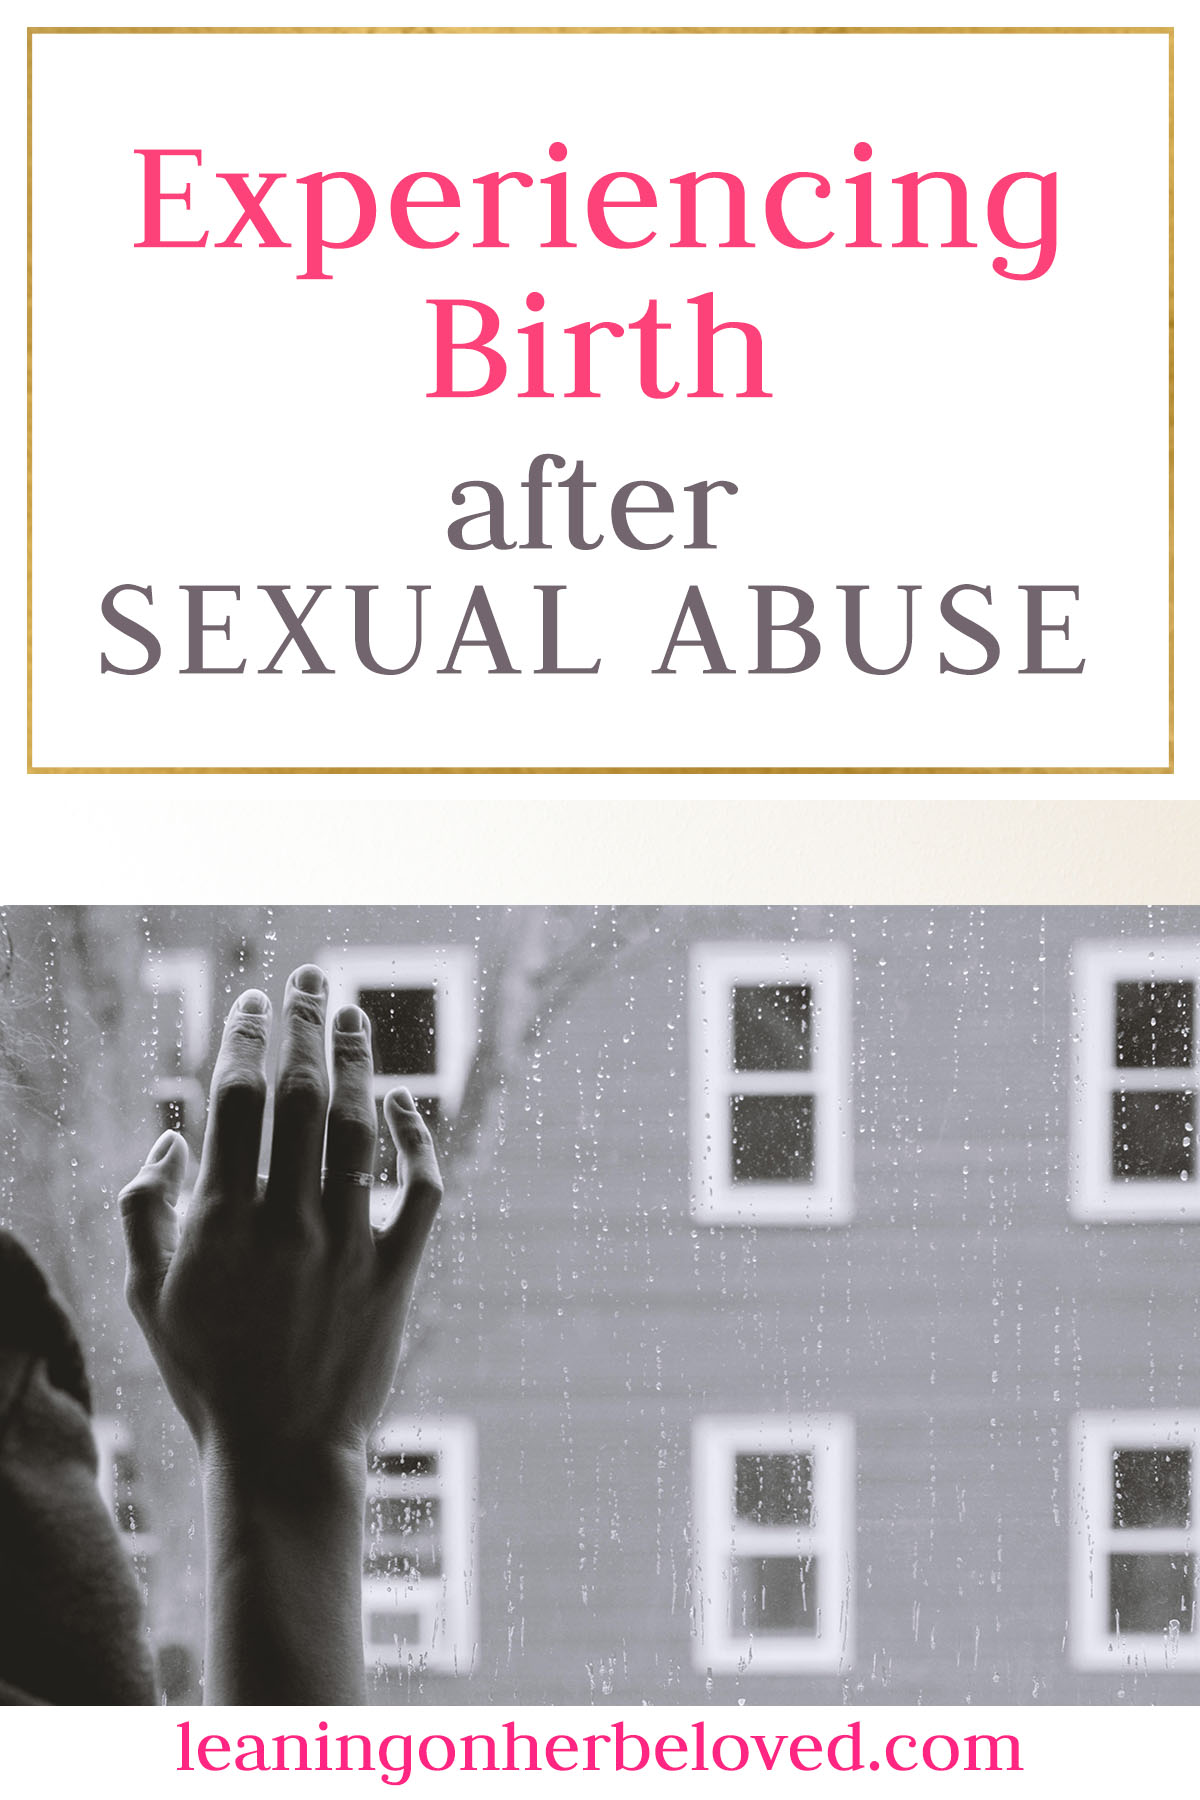 Birth can trigger repressed memories from past sexual abuse, find help today! | Sexual Assault | Birth | Abuse | #sexualabuse #birth #sexualassault #birthtrauma